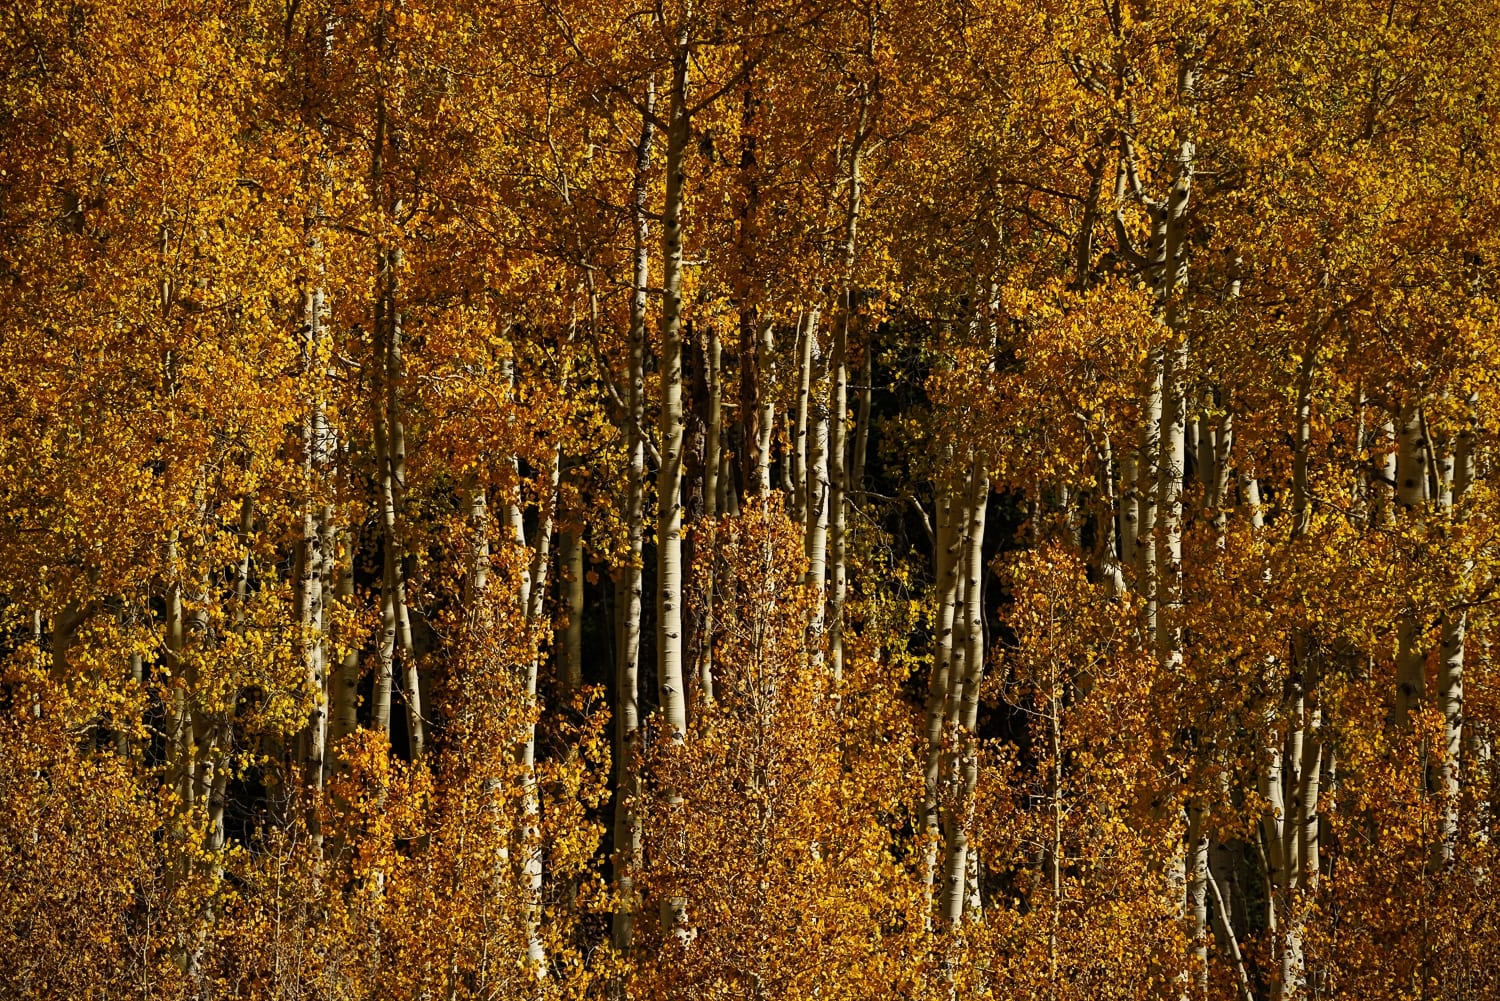 A close-up shot of a grove of aspen that have turned from the gold of fall to almost brown, resembling the color of chocolate baking squares.